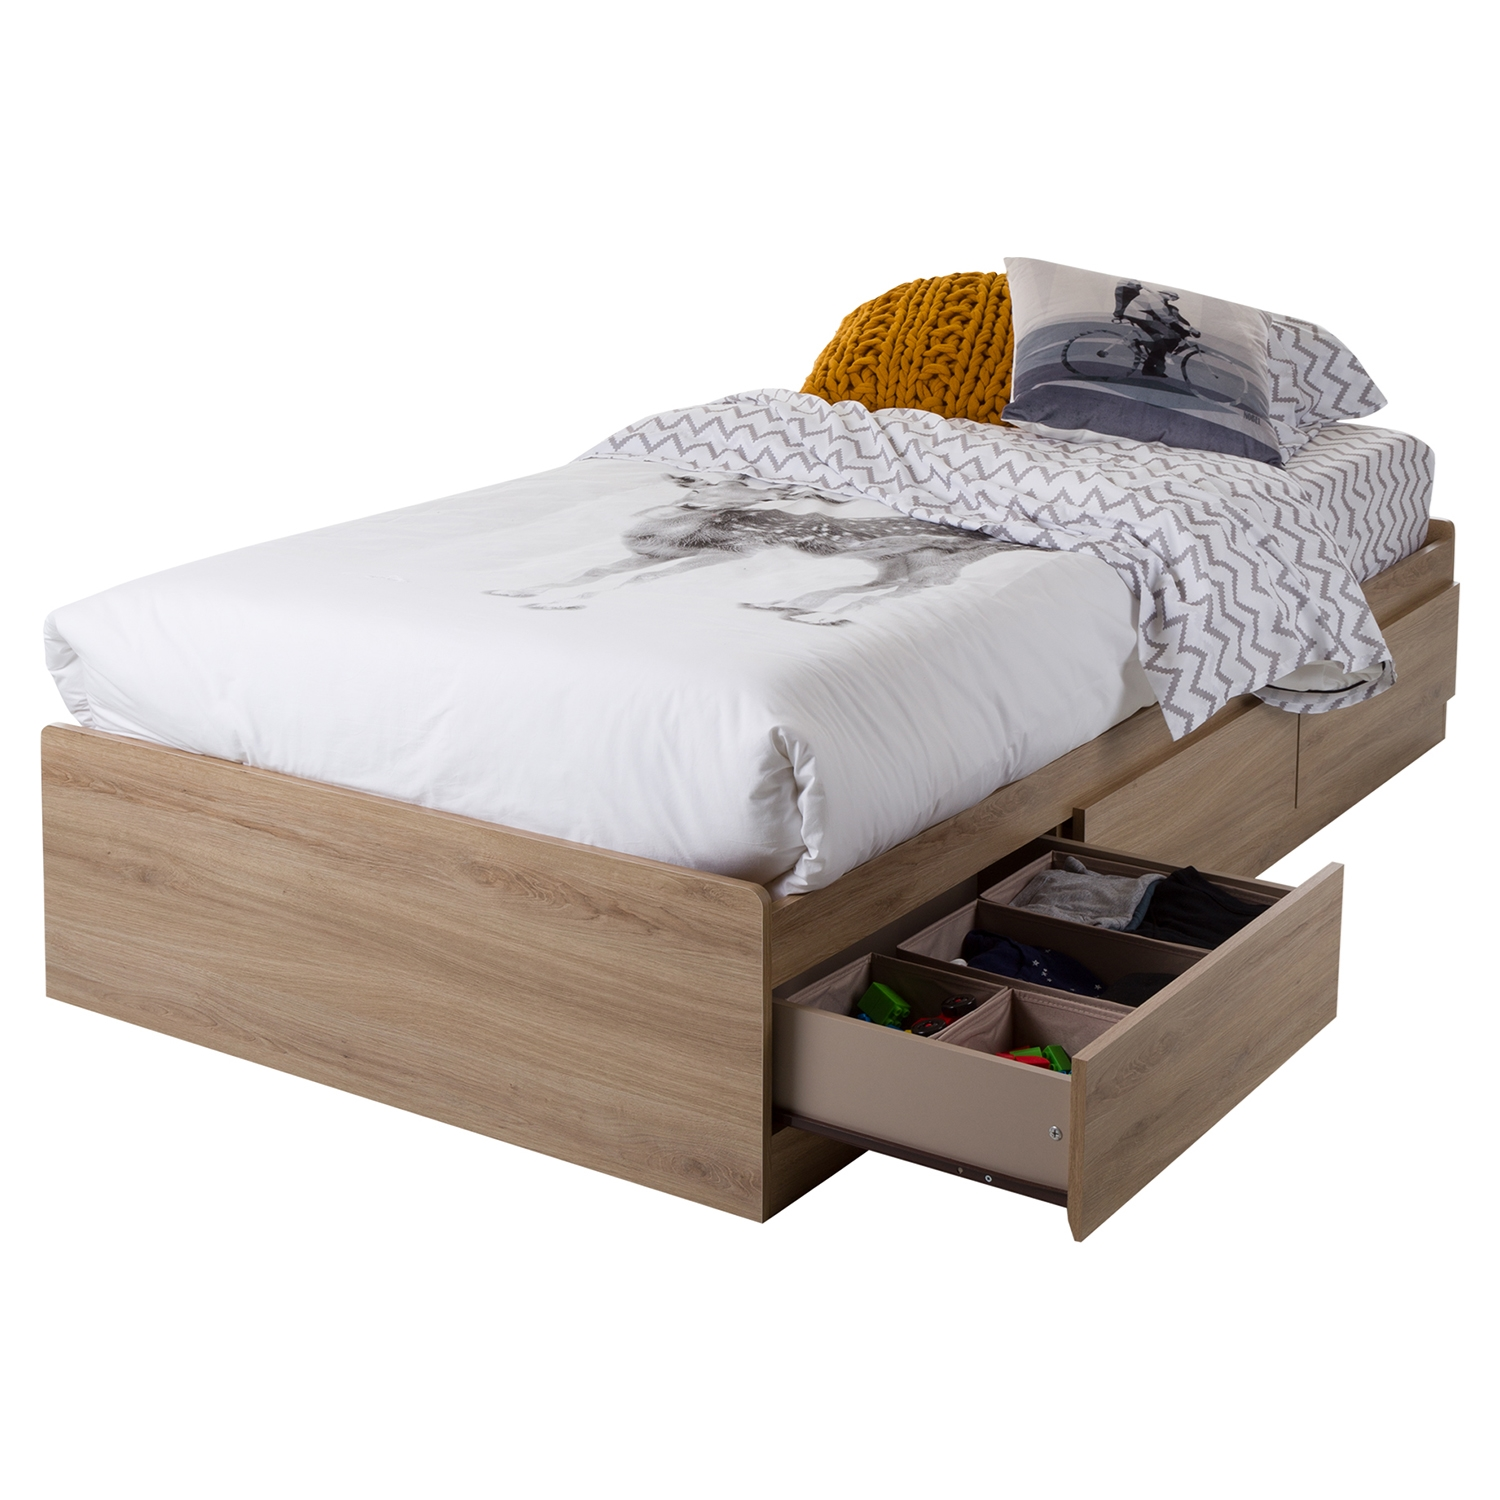 Fynn Twin Mates Bed - 3 Drawers, Rustic Oak - SS-9067212